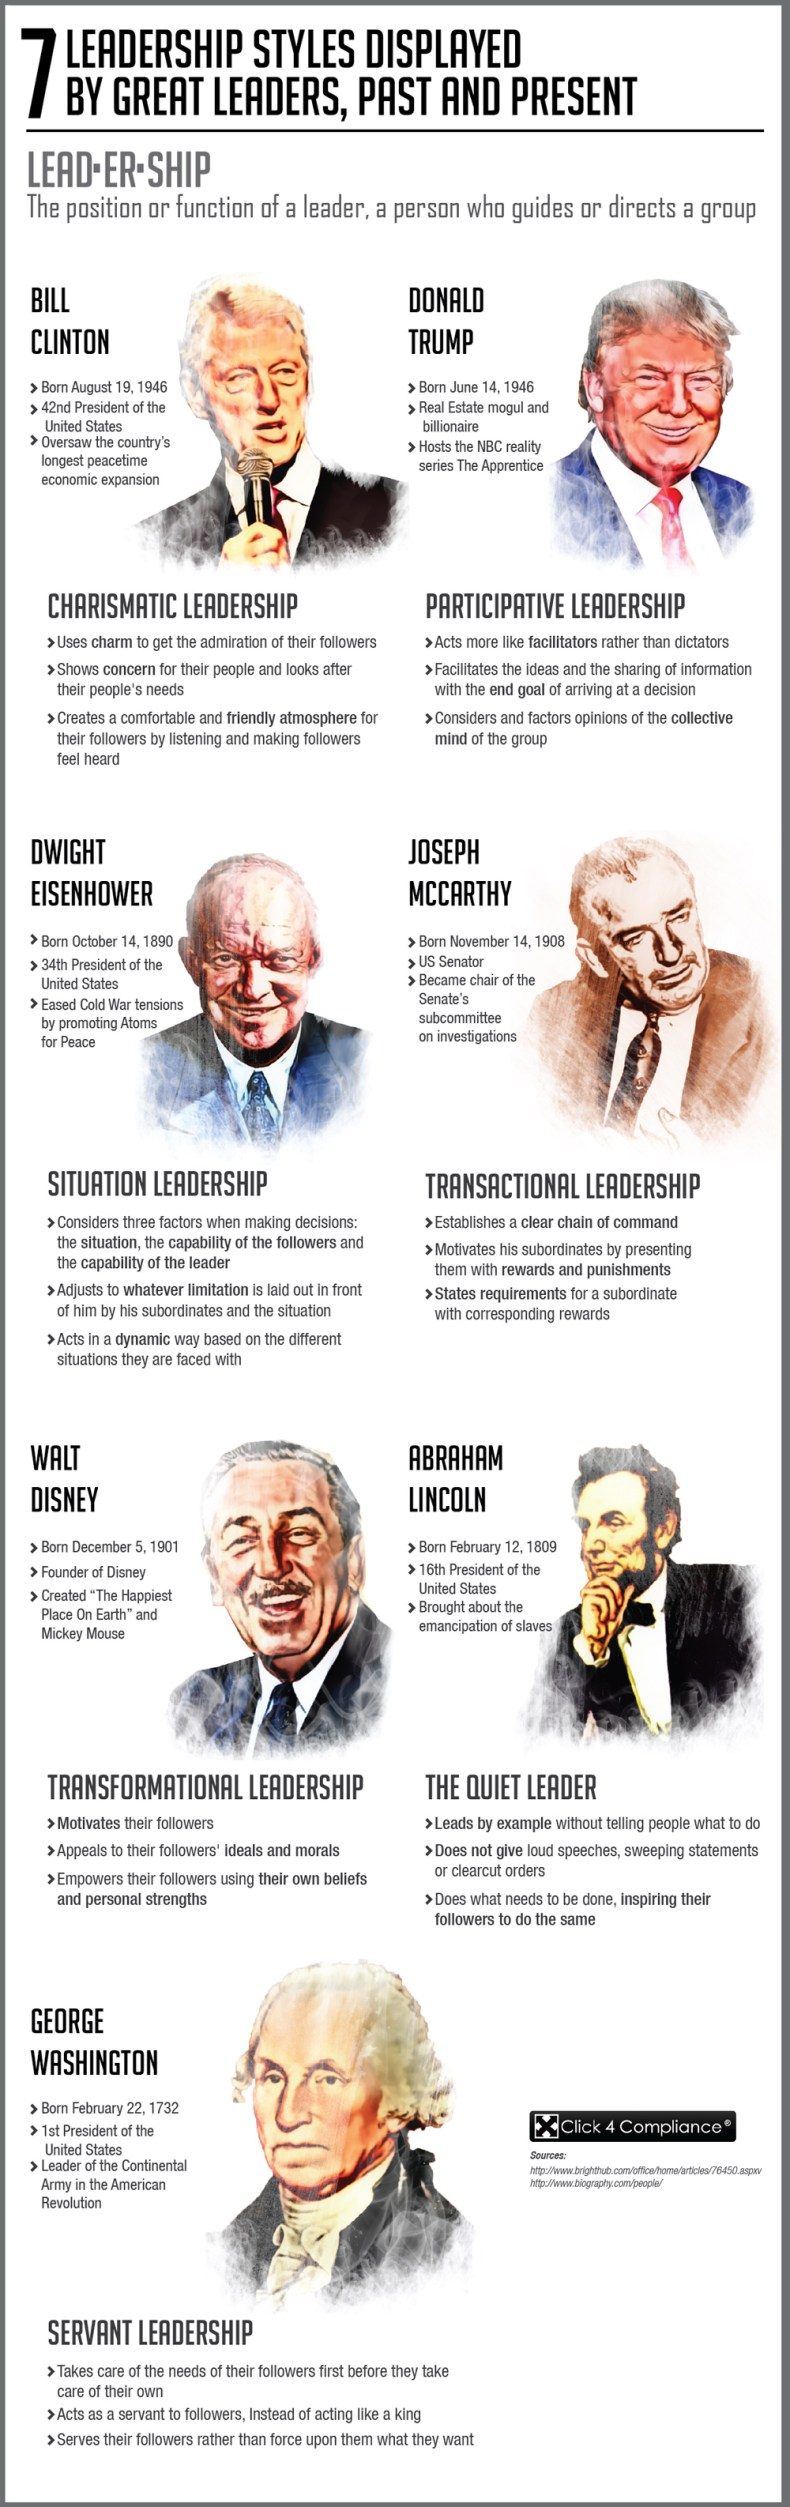 7 Leadership Styles Great Leaders Displayed Both Past And Present